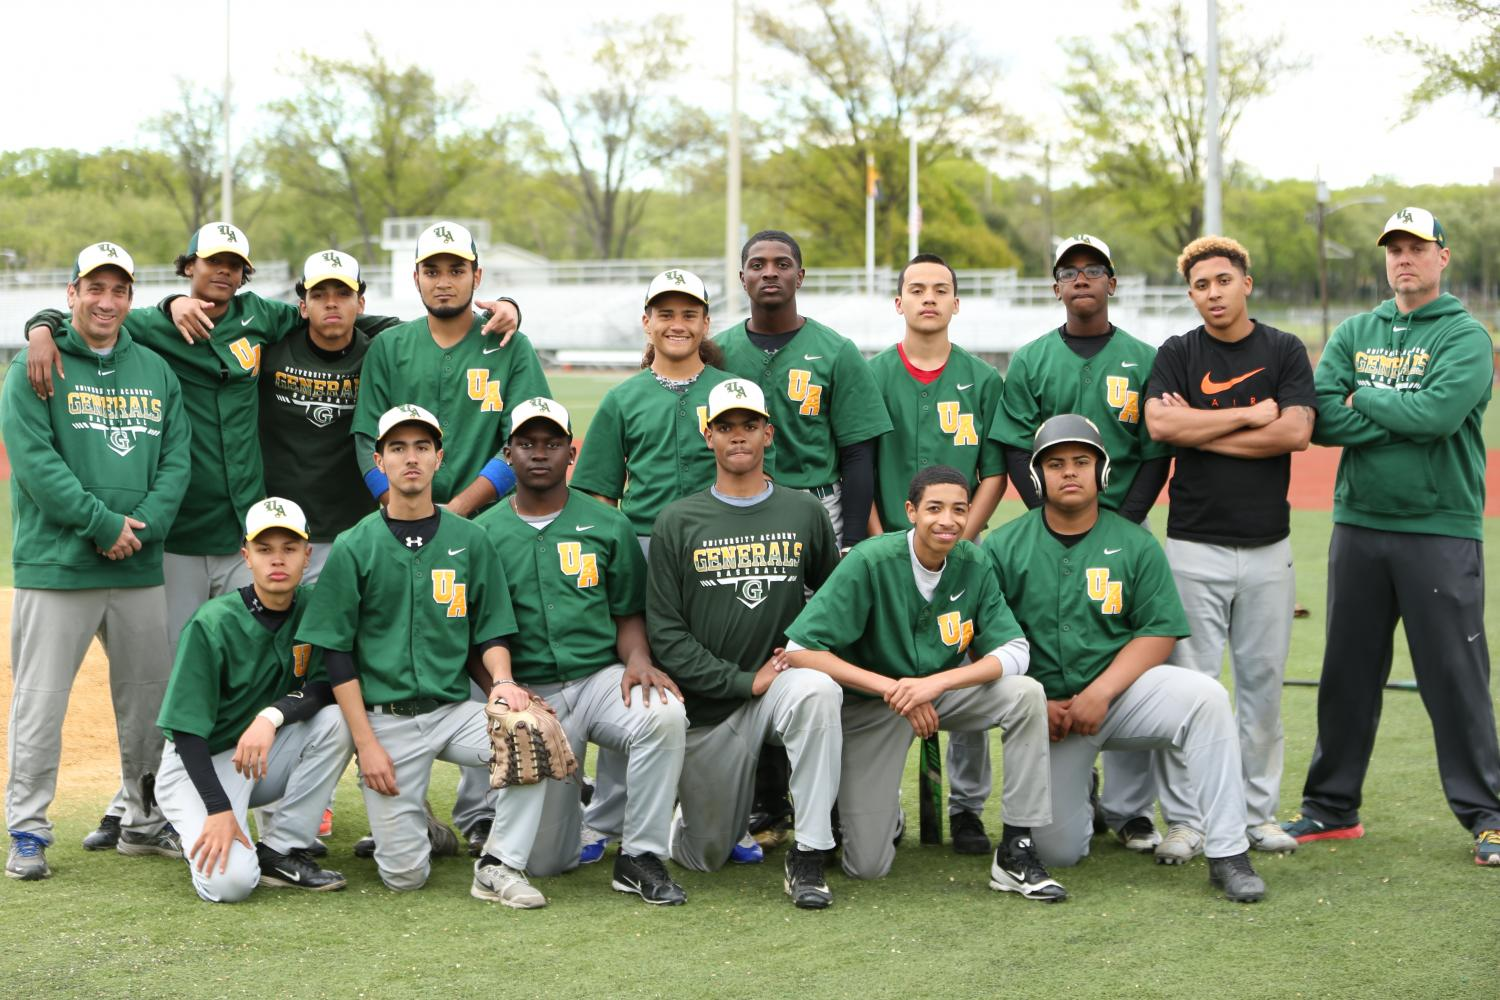 The+Generals+pose+for+their+team+photo.+The+baseball+team+ended+the+season+with+a+record+of+2-17.